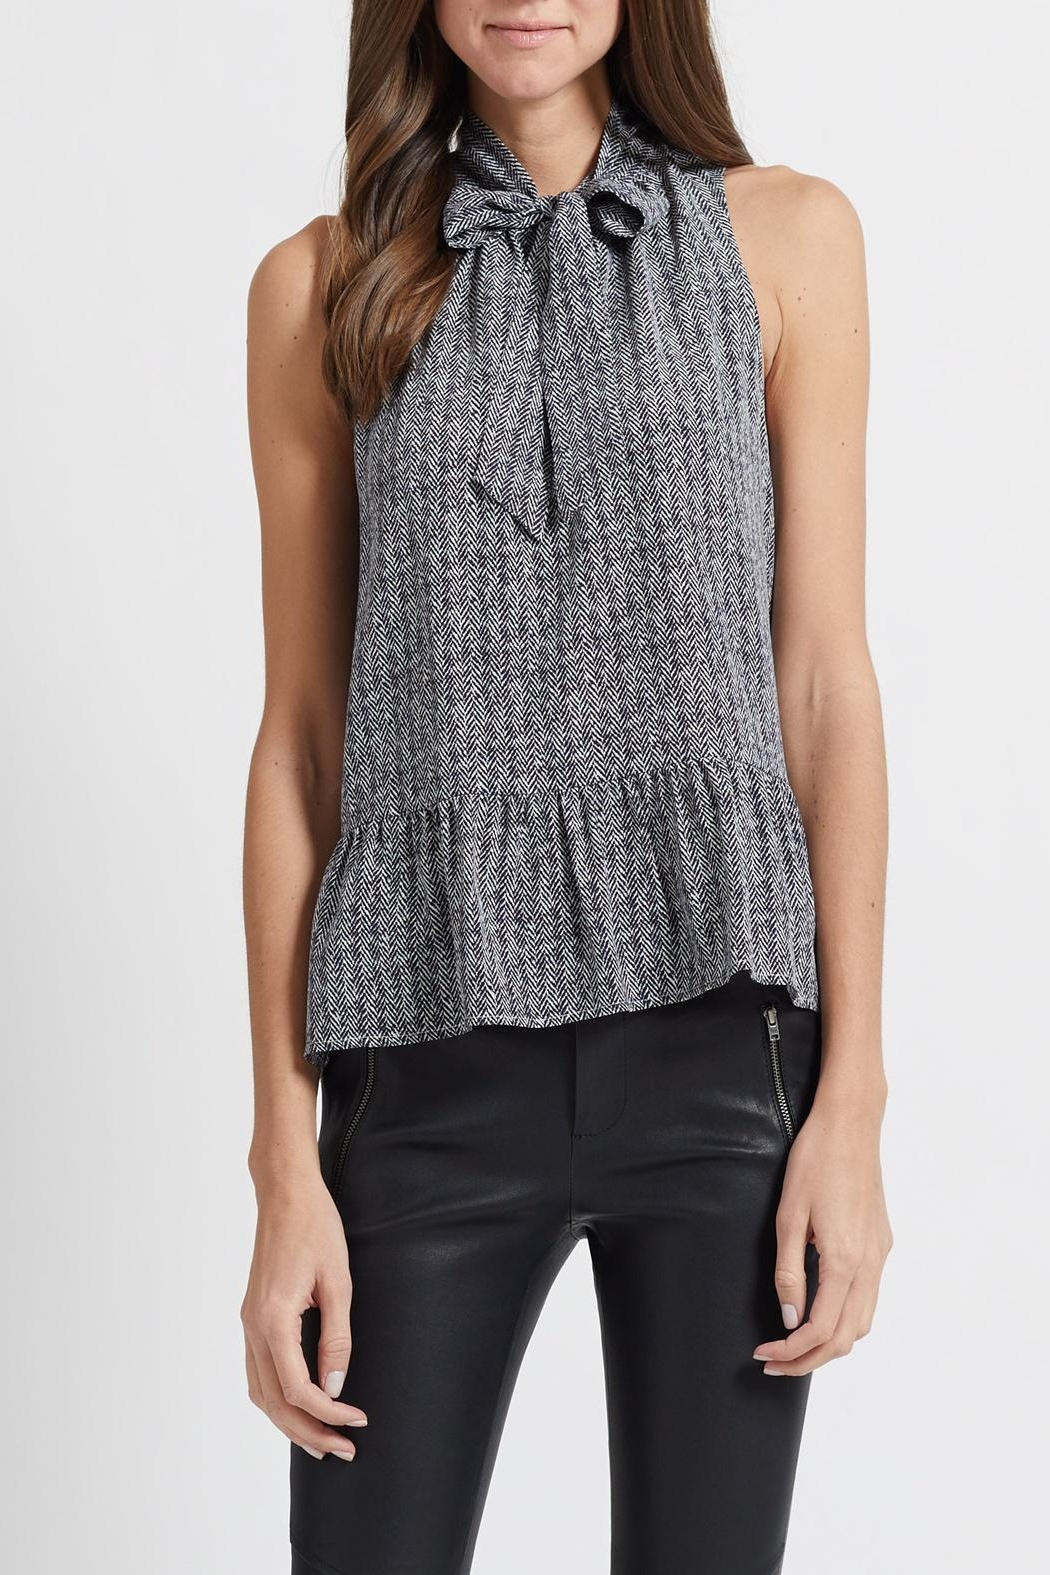 Joie Estero Tweed Blouse - Front Cropped Image